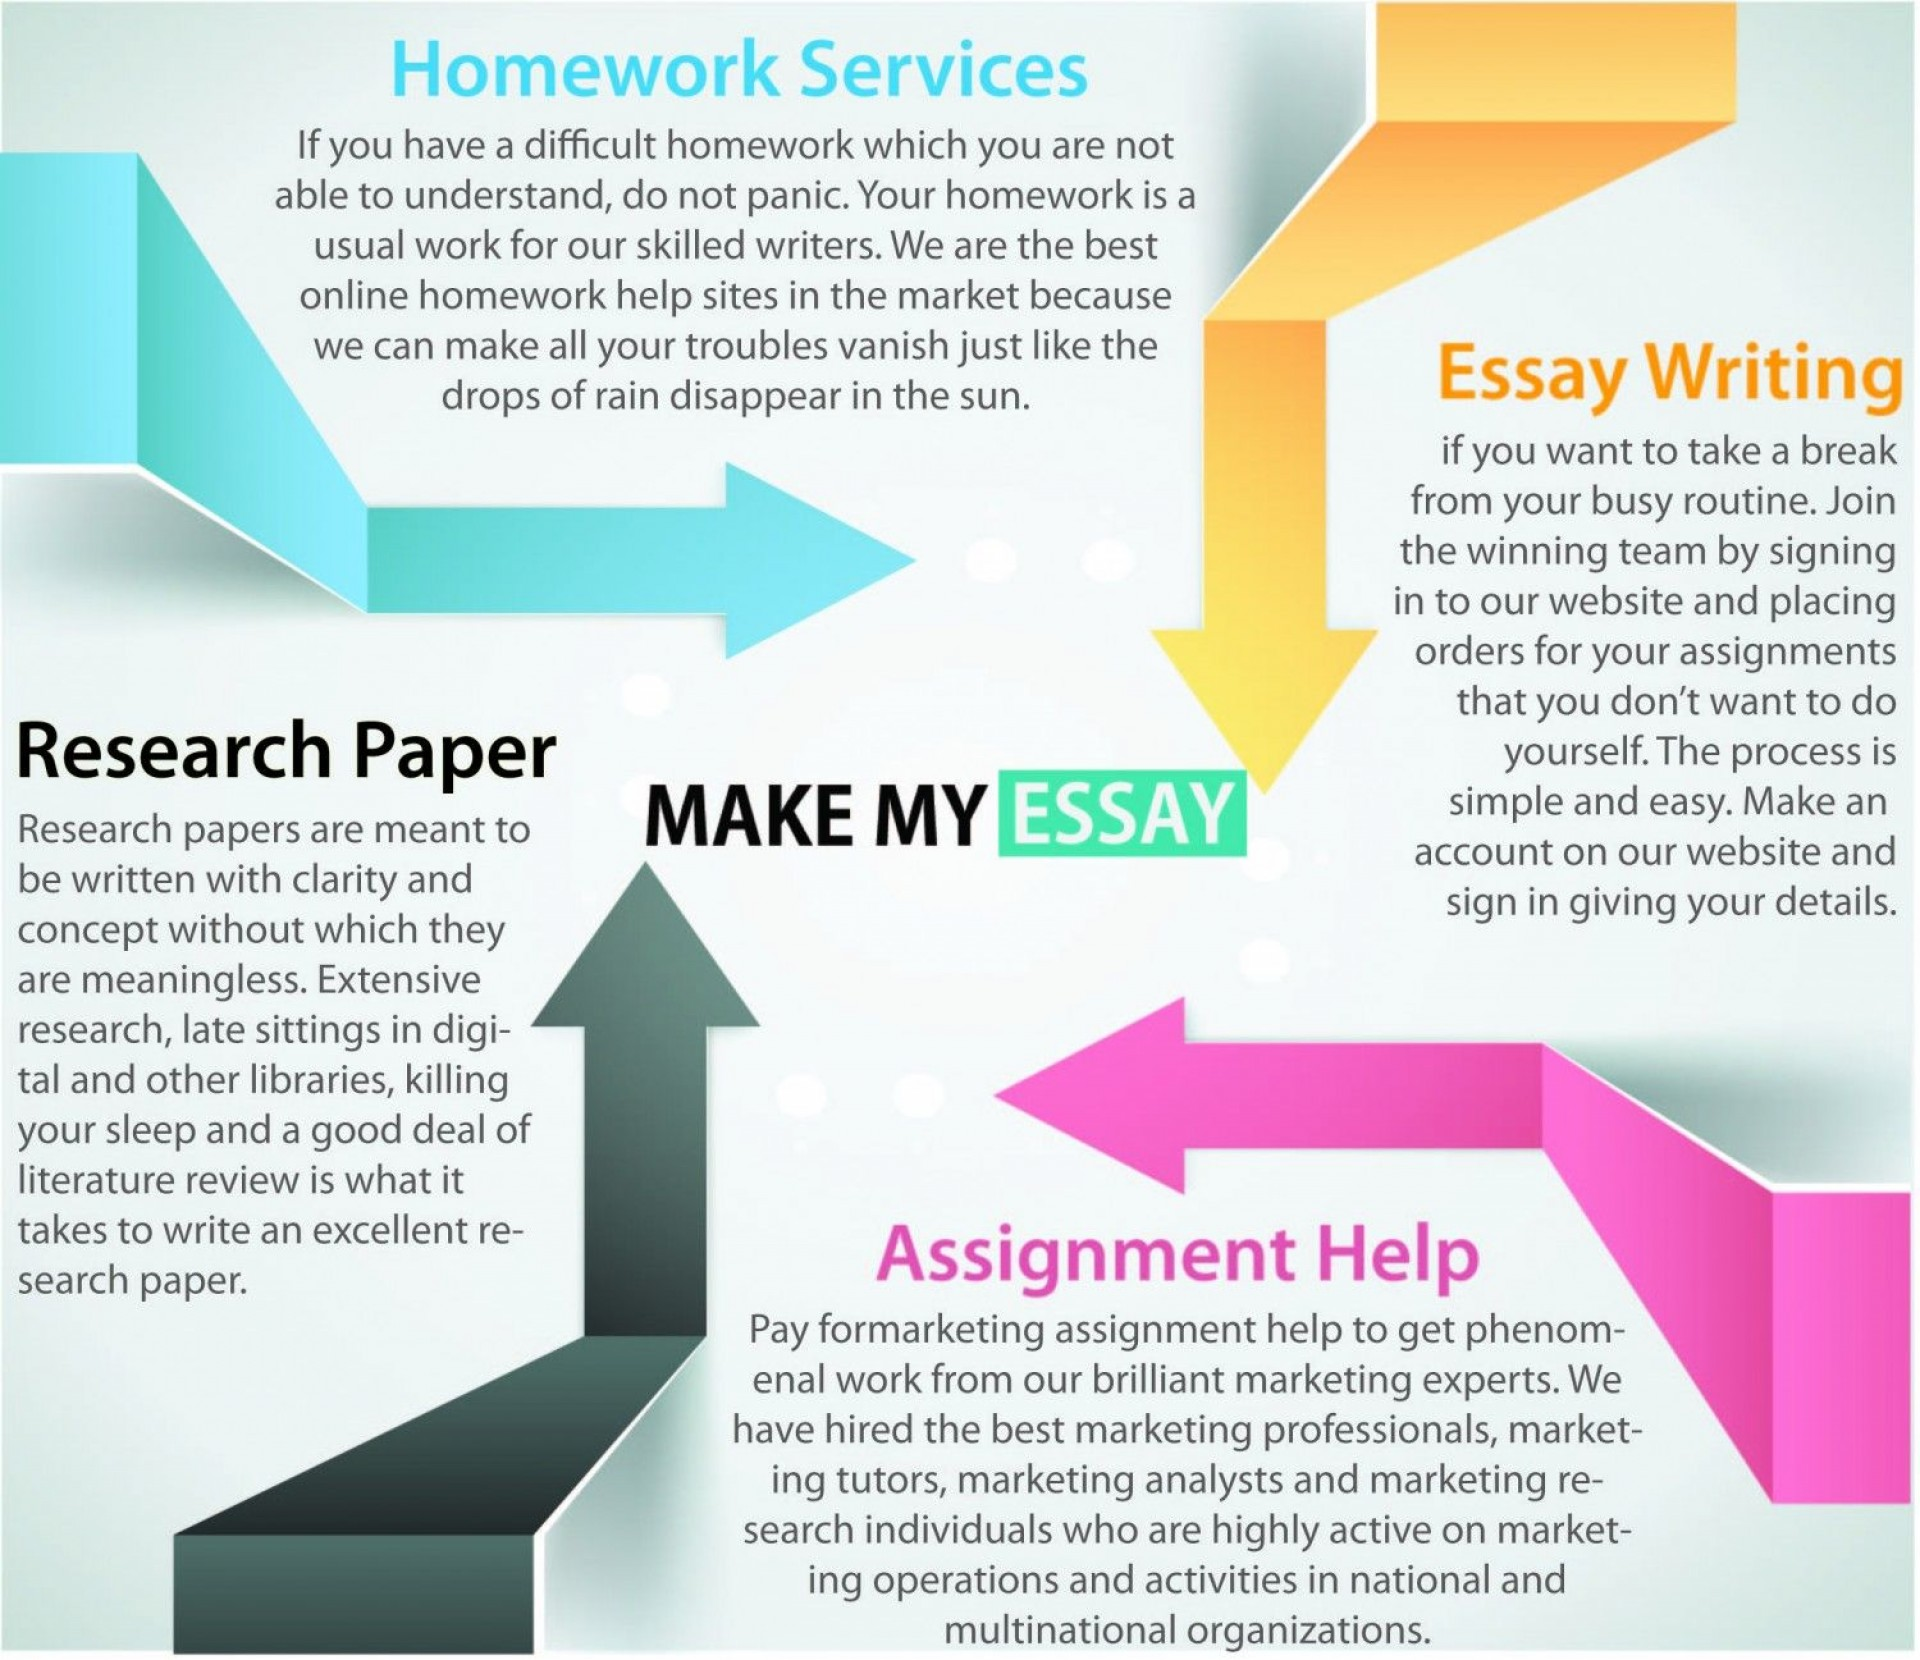 019 Essay Example Help With Surprising My Me Introduction Sound Better Research Paper For Free 1920